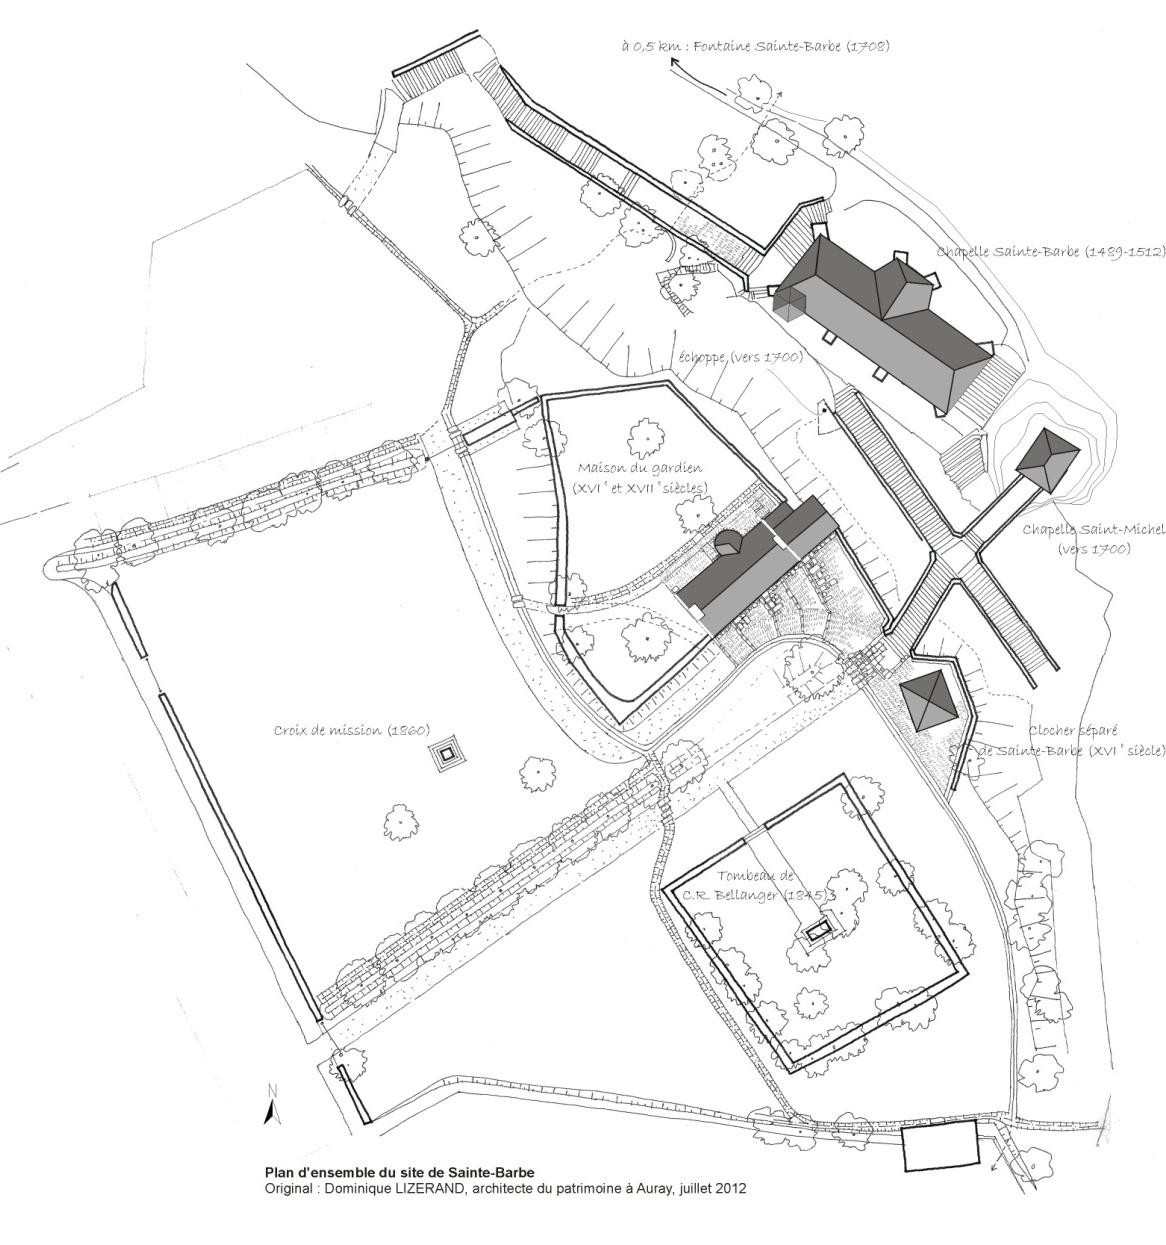 Plan d'ensemble du site de Sainte-Barbe - Original : Dominique LIZERAND, architecte du patrimoine à Auray, juillet 2012